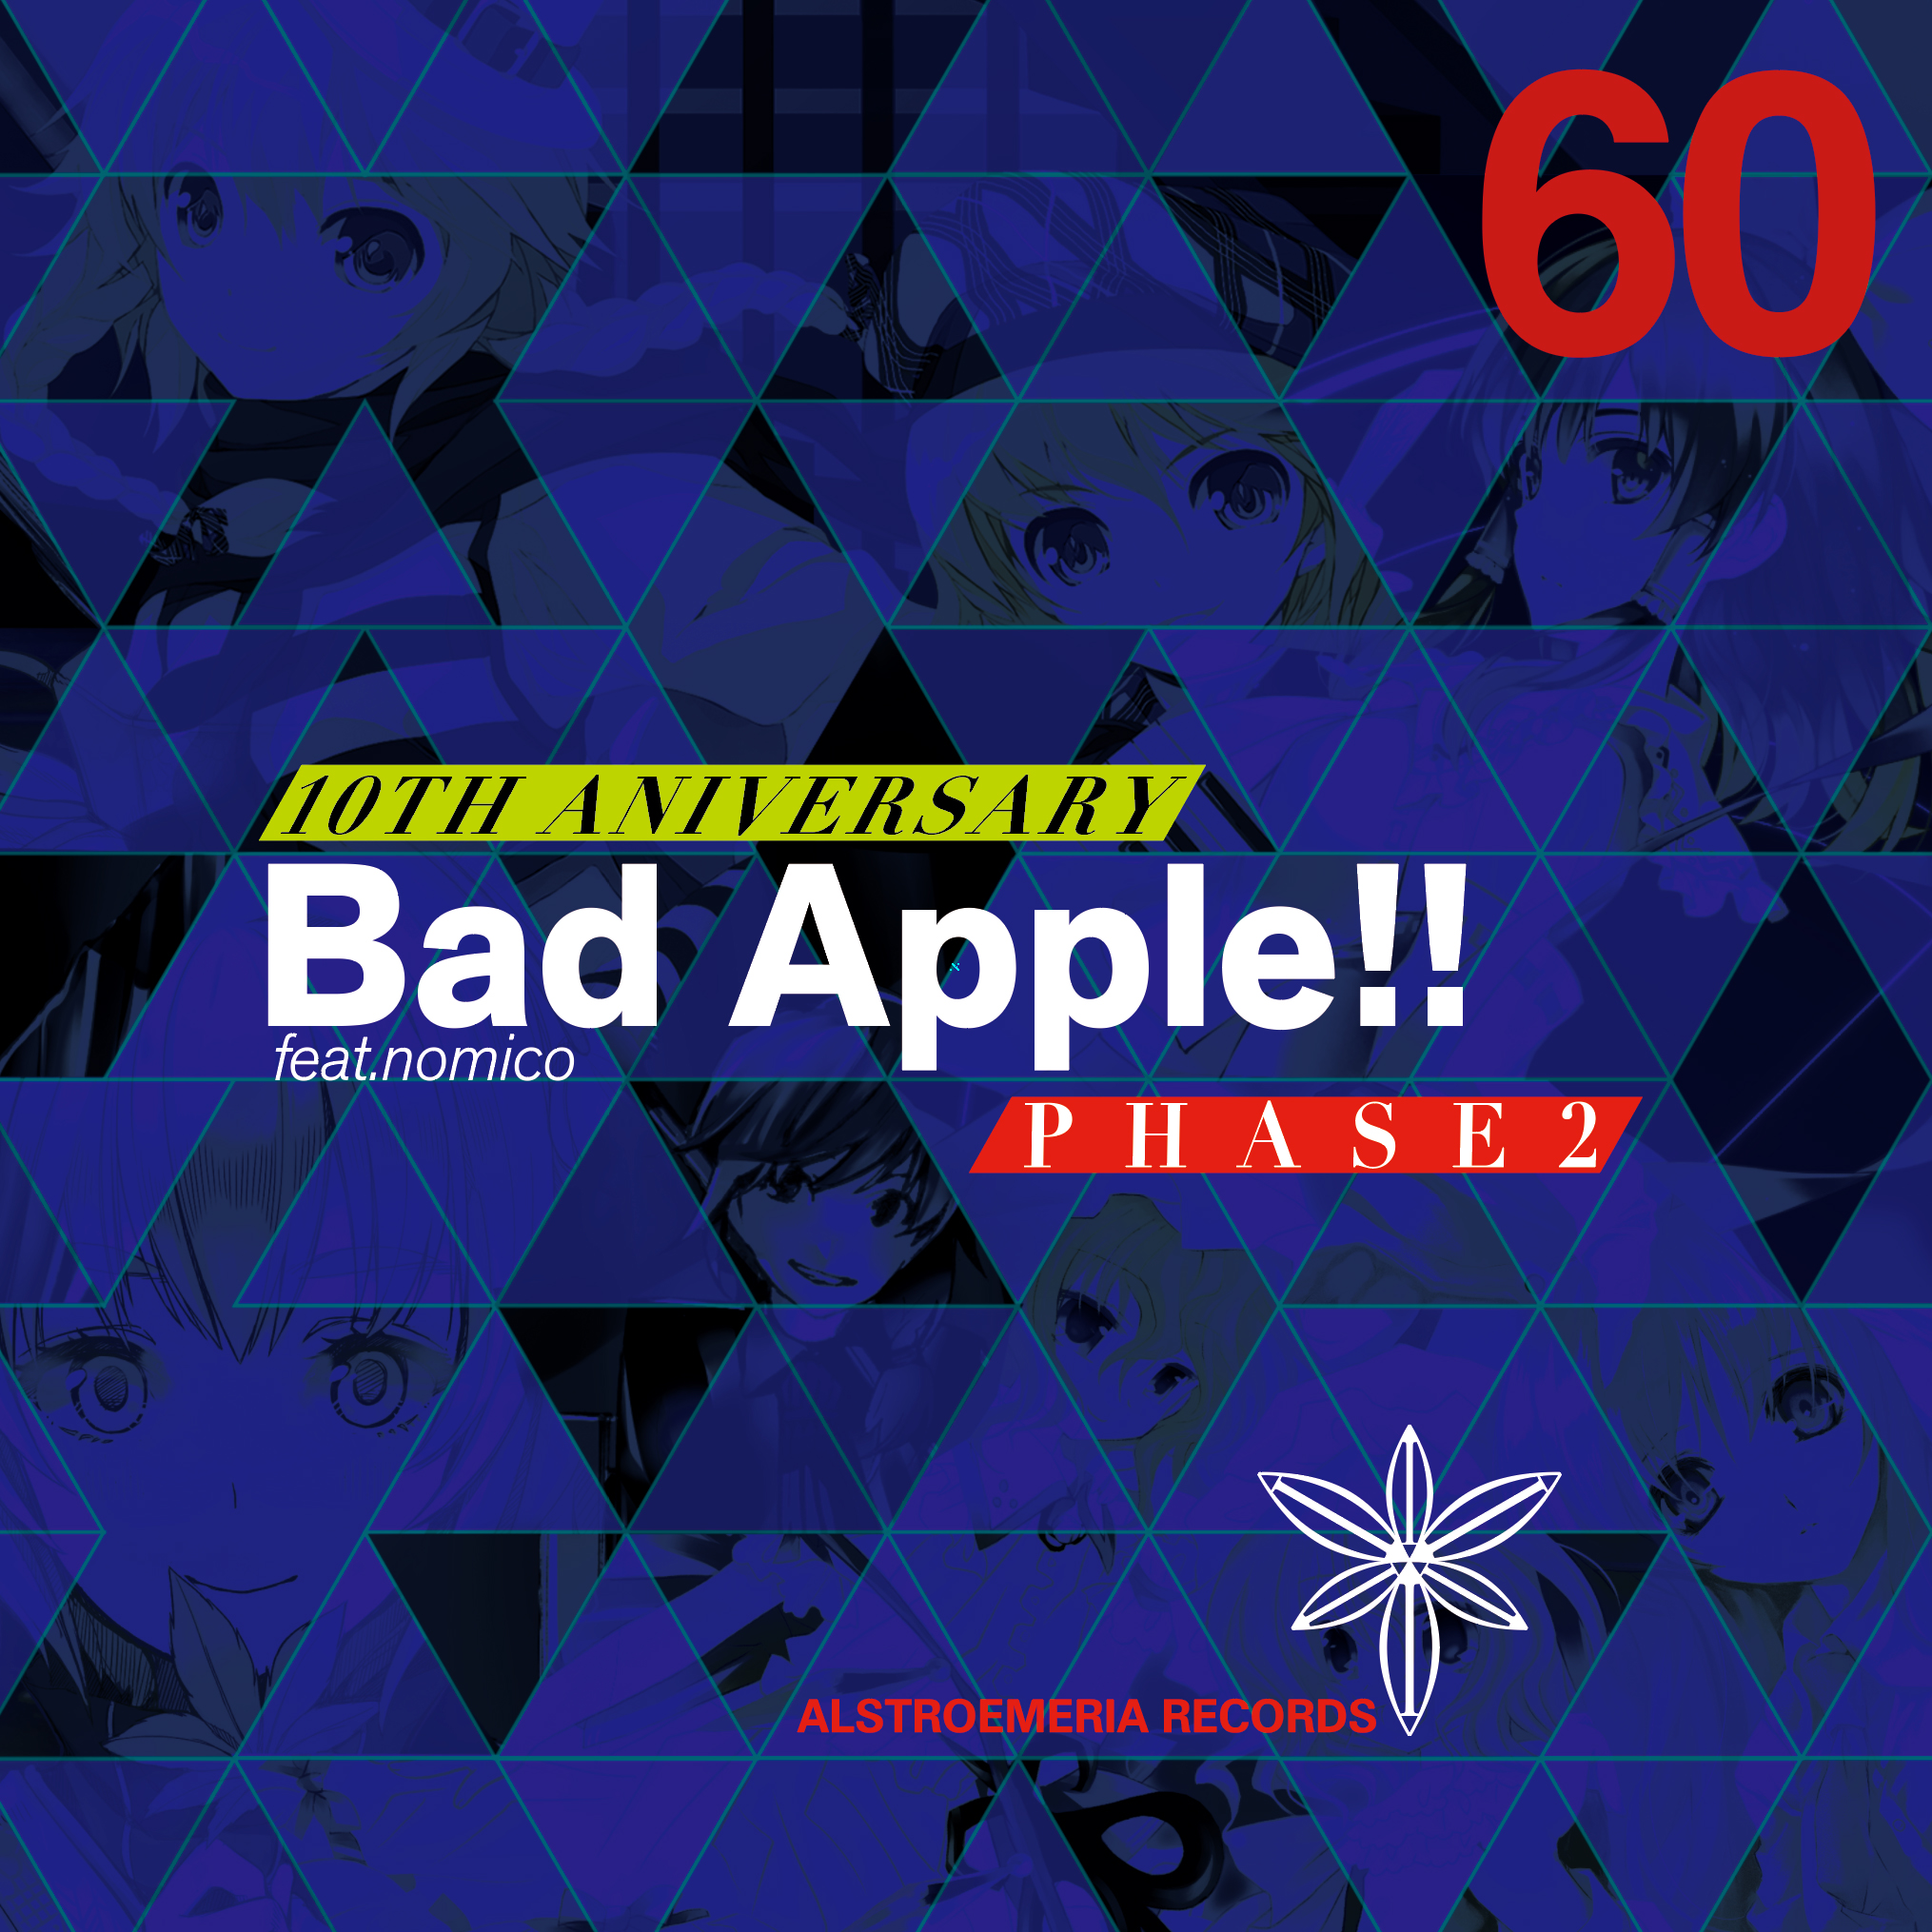 ARCD0060 / Bad Apple!! feat.nomico 10th Anniversary PHASE2